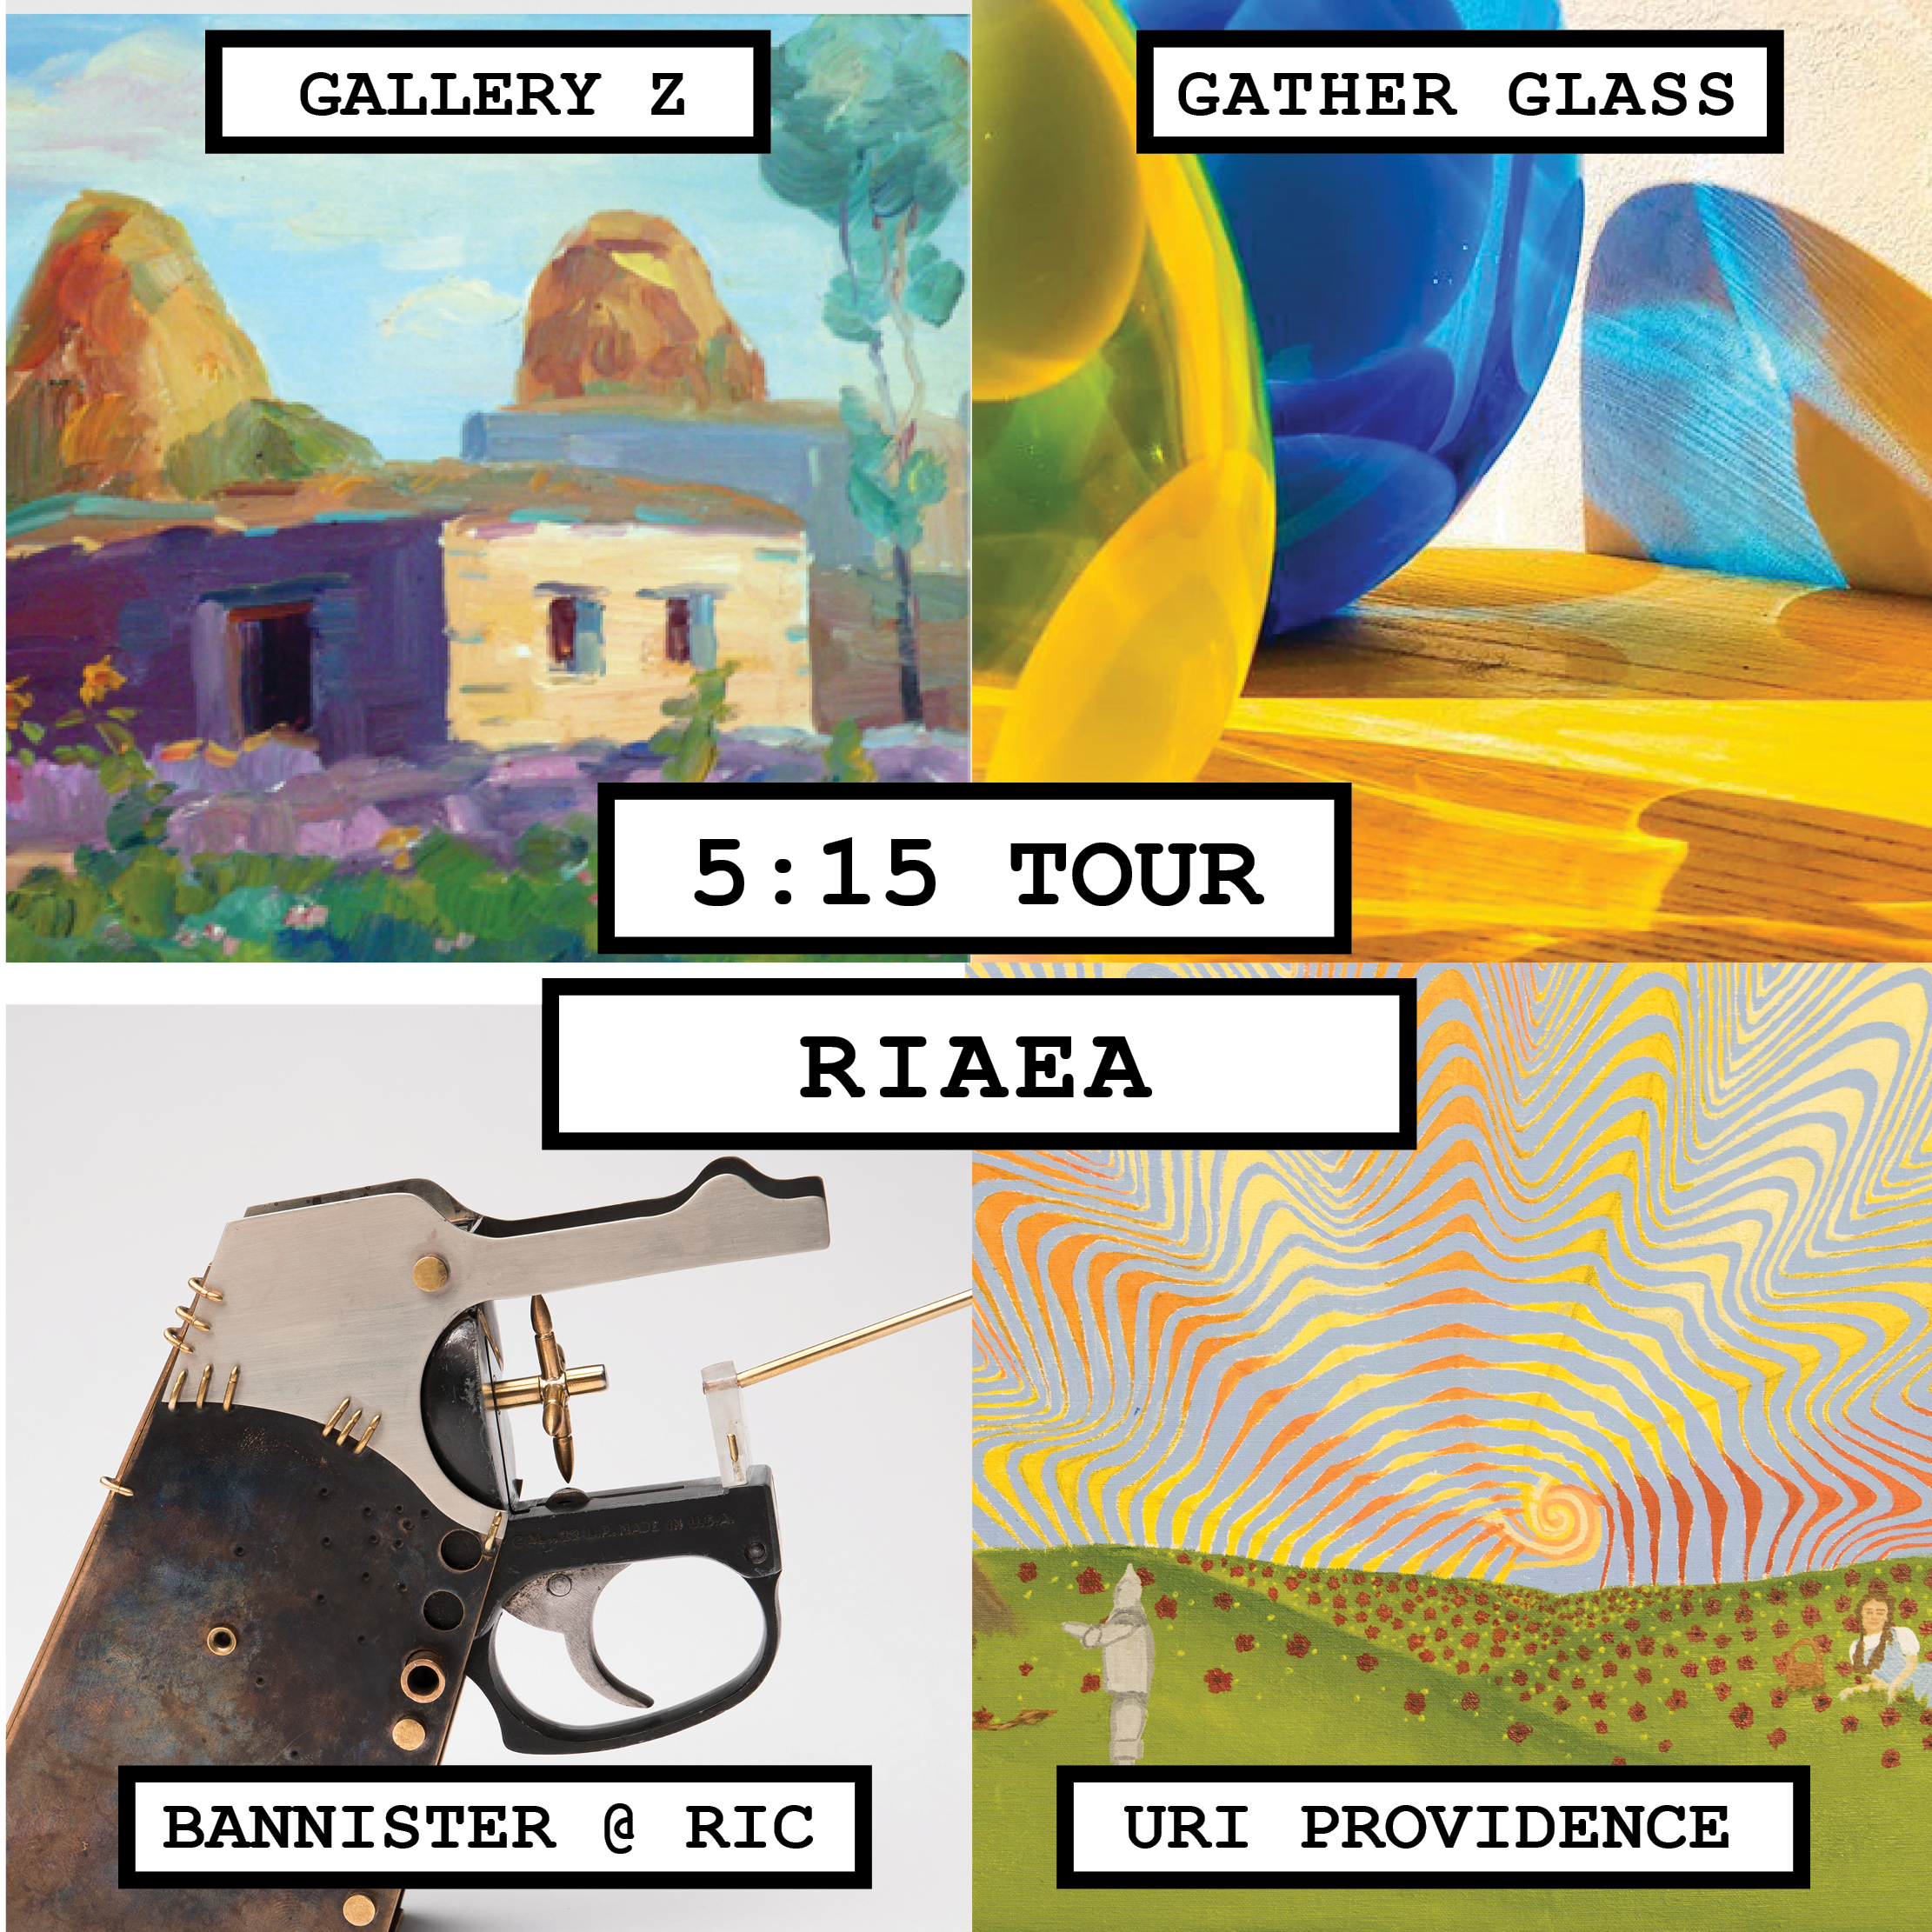 5:15 Tour - RIAEA (RI Art Education Association)     Gallery Night Guide: Frank Toti     Celebrity Guide: Kerry Murphy    Gallery Z  Gather Glass  Rhode Island College (Bannister)  URI Providence Campus